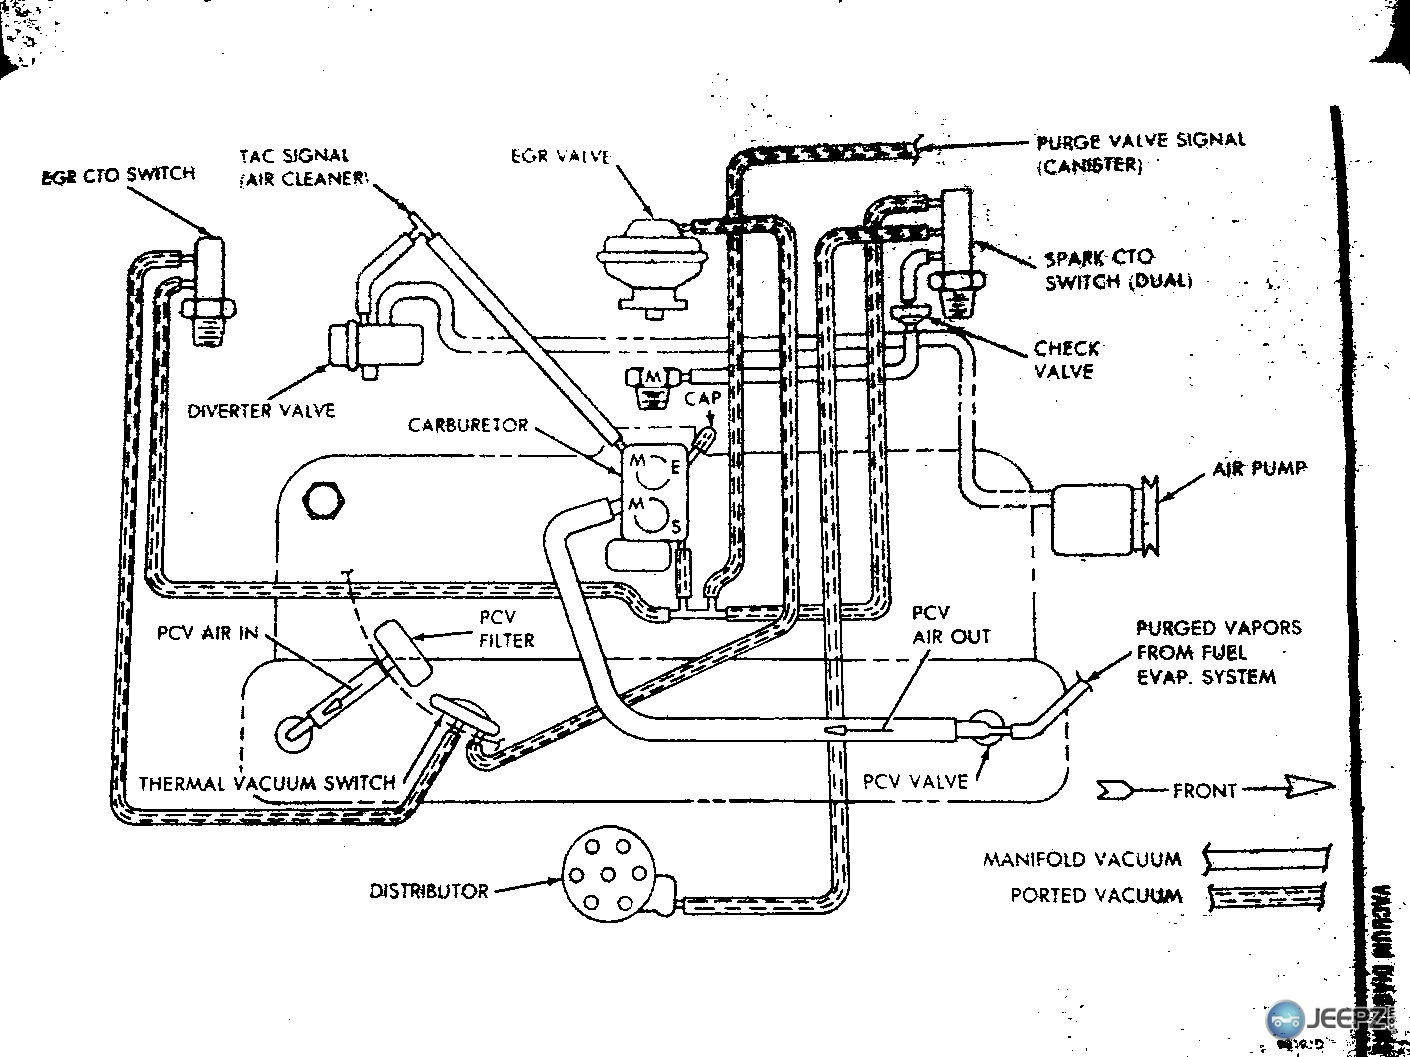 jeep 4 2 engine vacuum diagram box wiring diagram rh 3 pfotenpower ev de 1988 Jeep Wrangler Vacuum Diagram Jeep YJ Engine Diagram